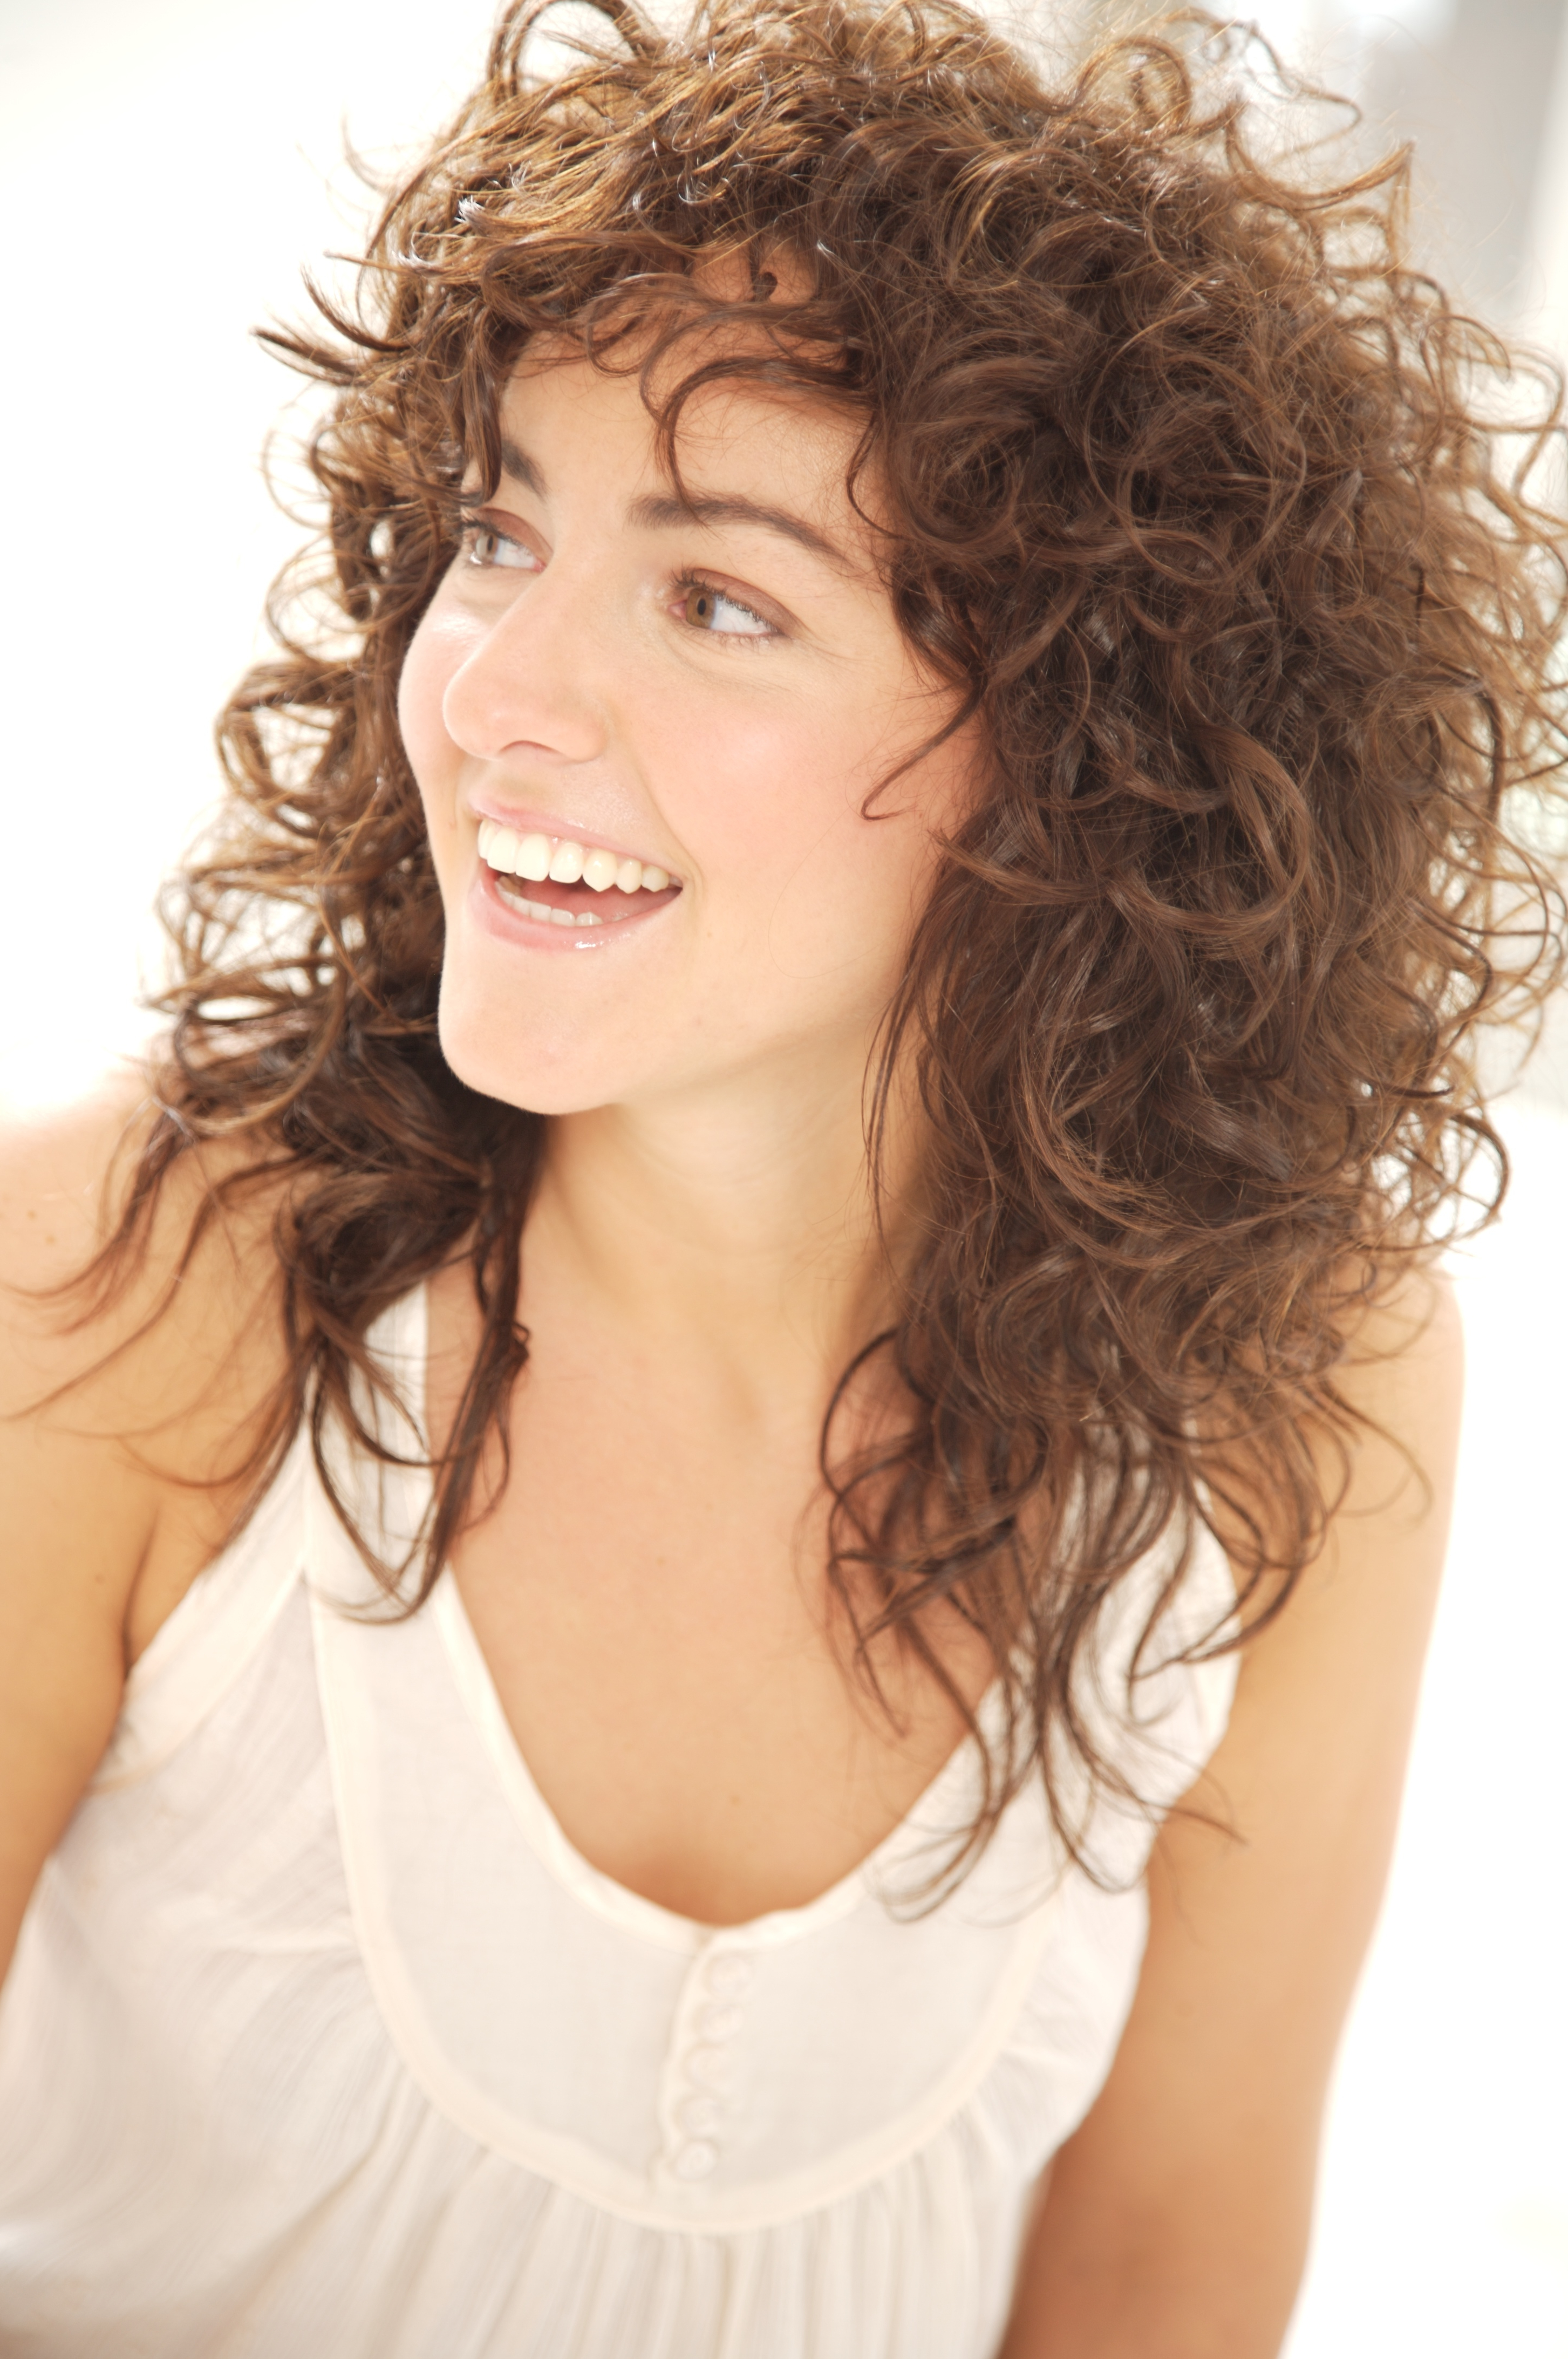 Hair Cuts : Naturally Curly Haircuts Short For Round Faces And Hair Intended For Well Known Naturally Curly Medium Hairstyles (View 14 of 20)